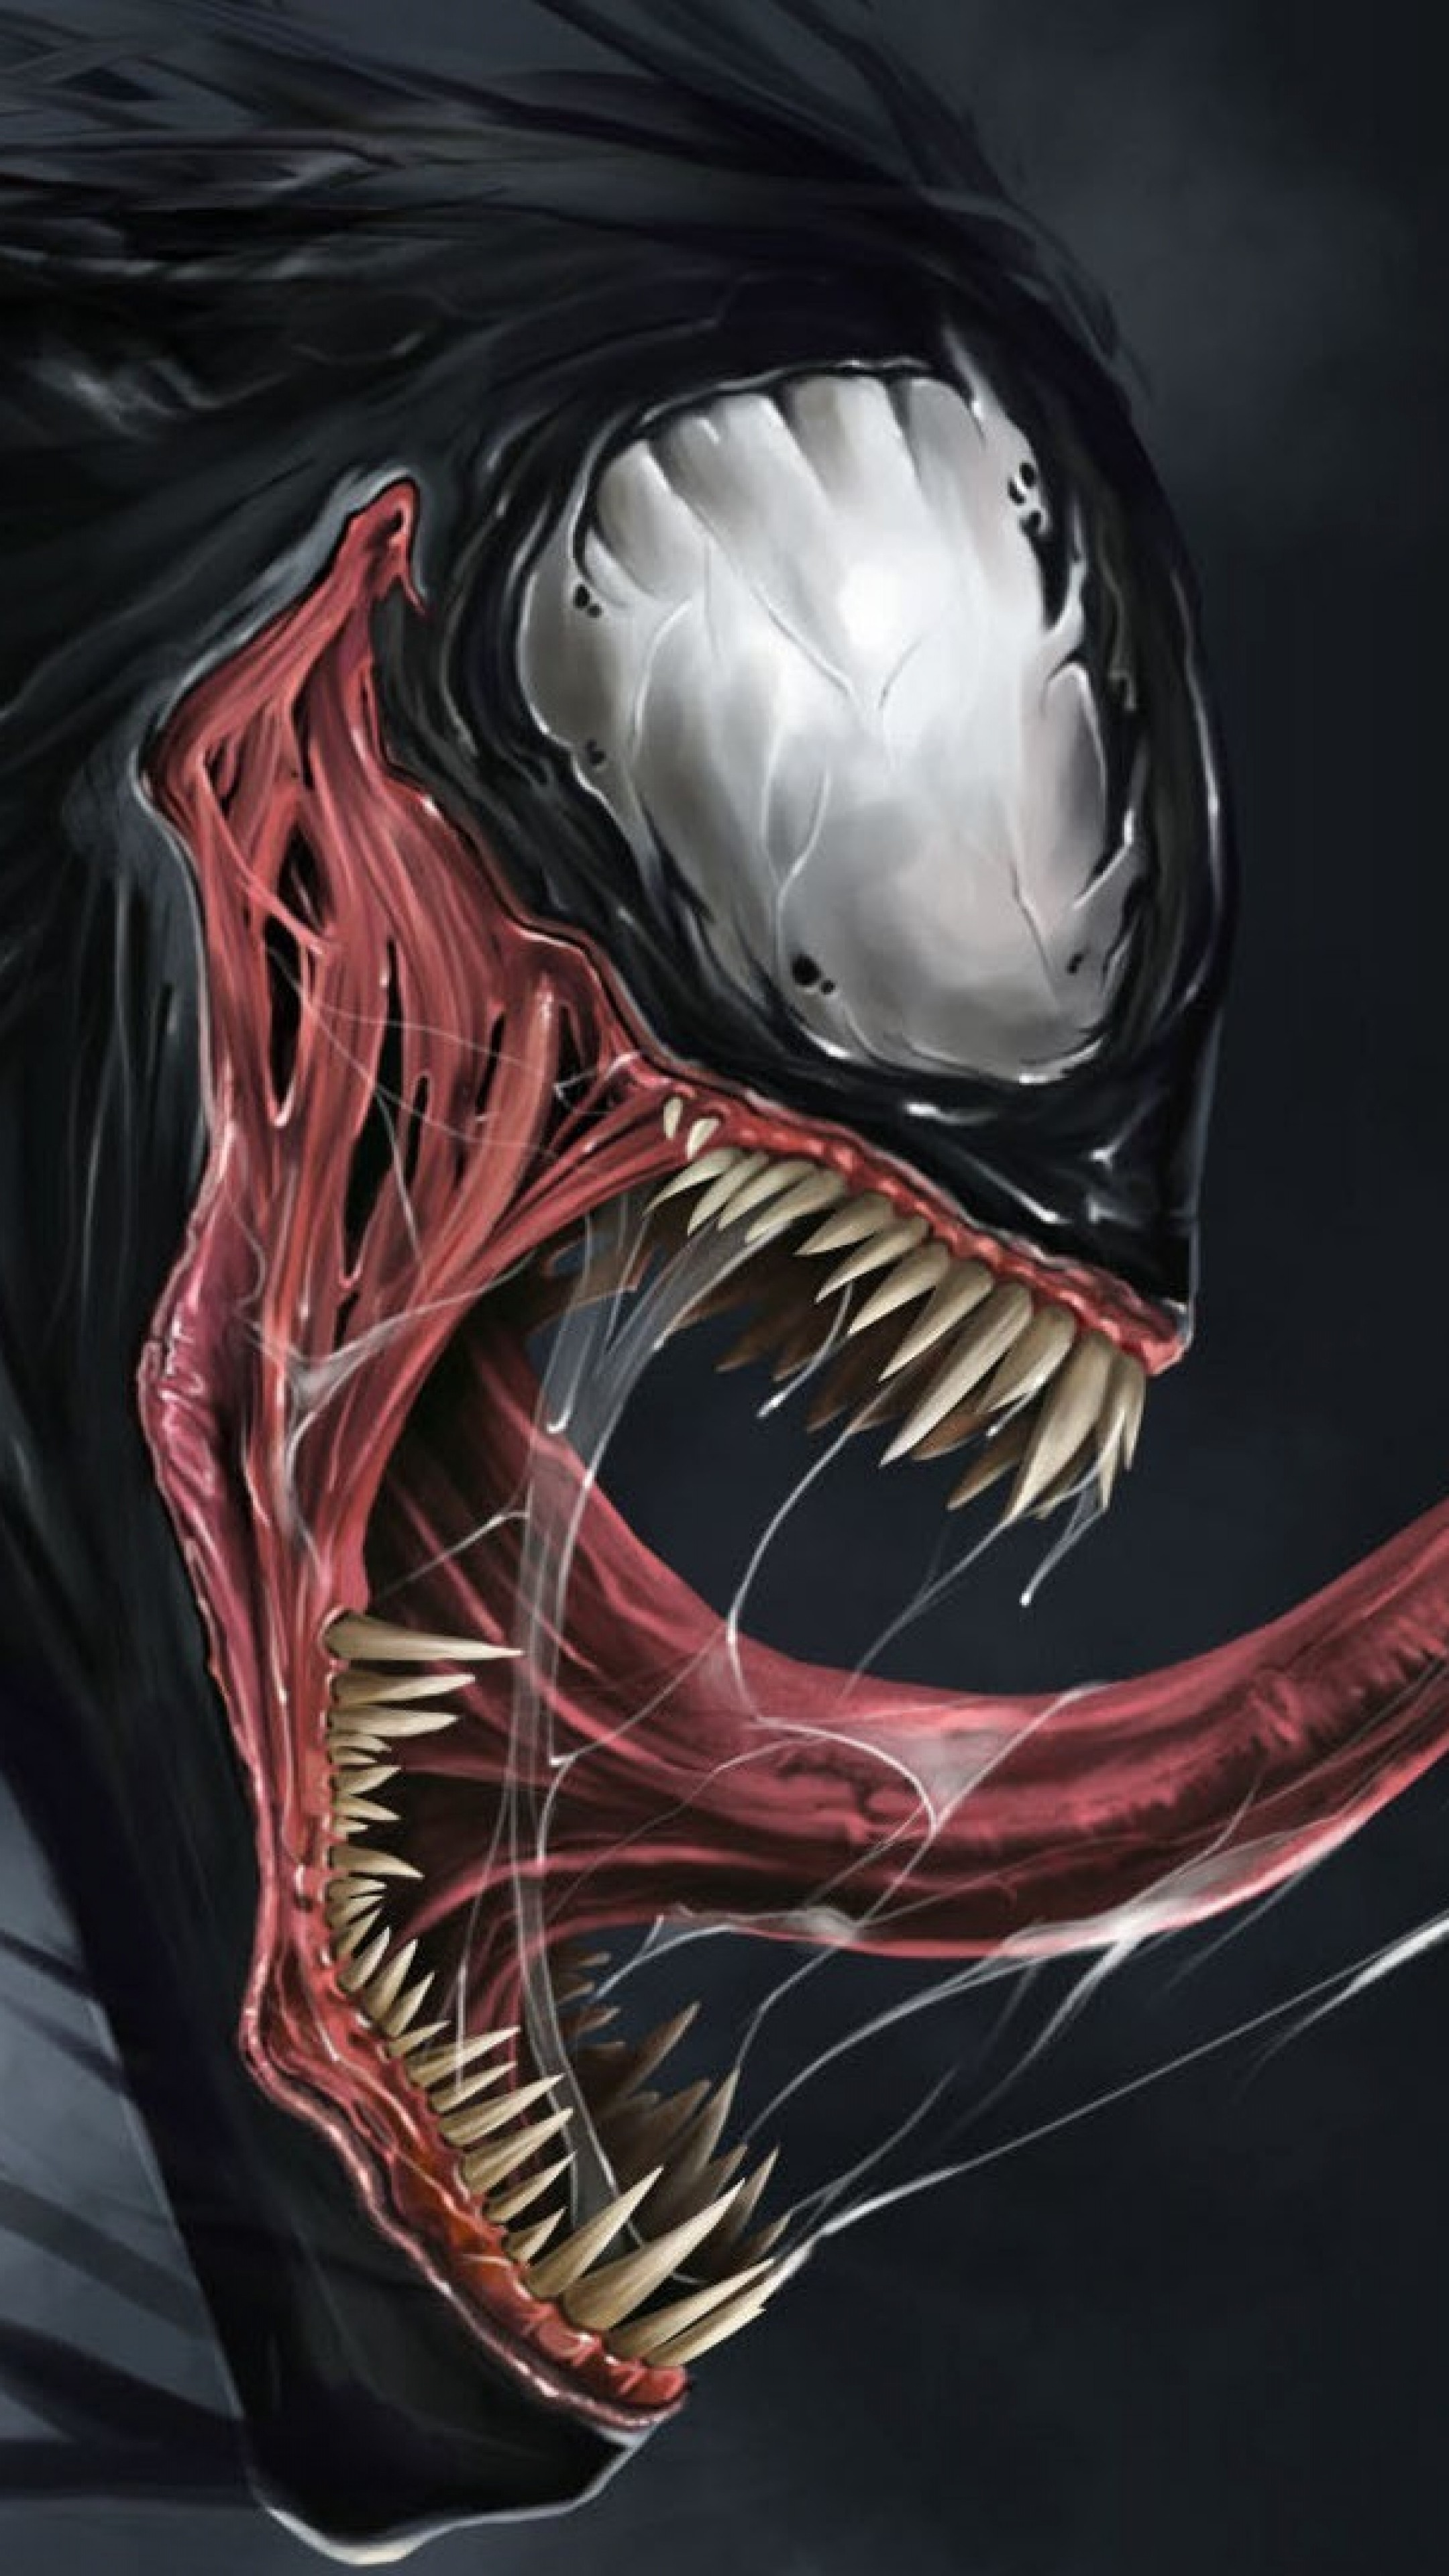 Spiderman venom wallpaper 59 images - Venom hd wallpaper android ...